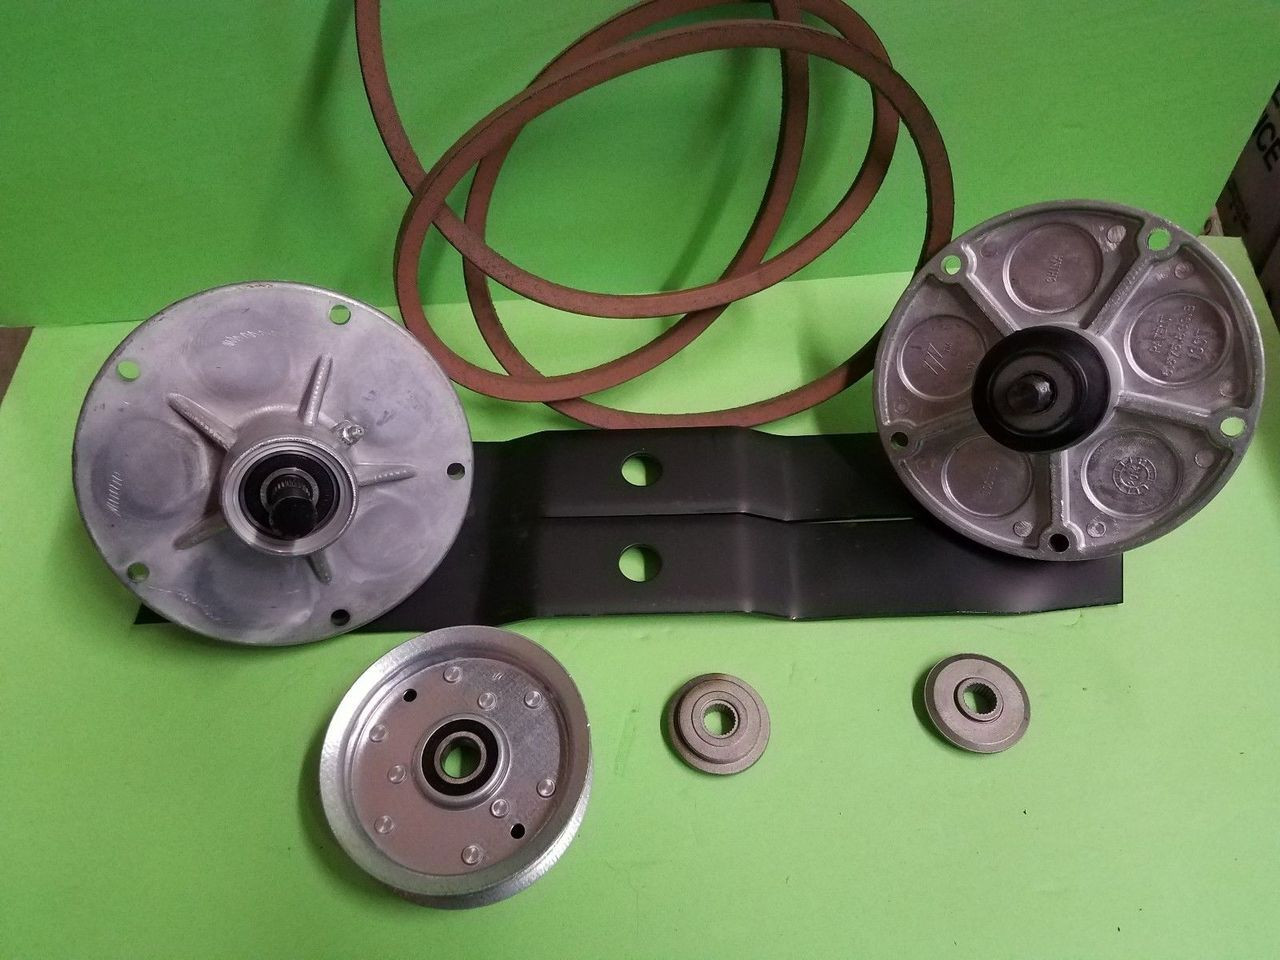 Murray Lawnmower 38 Deck Rebuild Kit Spindles Blades Belt Pulley Lawn Tractor Wiring Harness Adapters